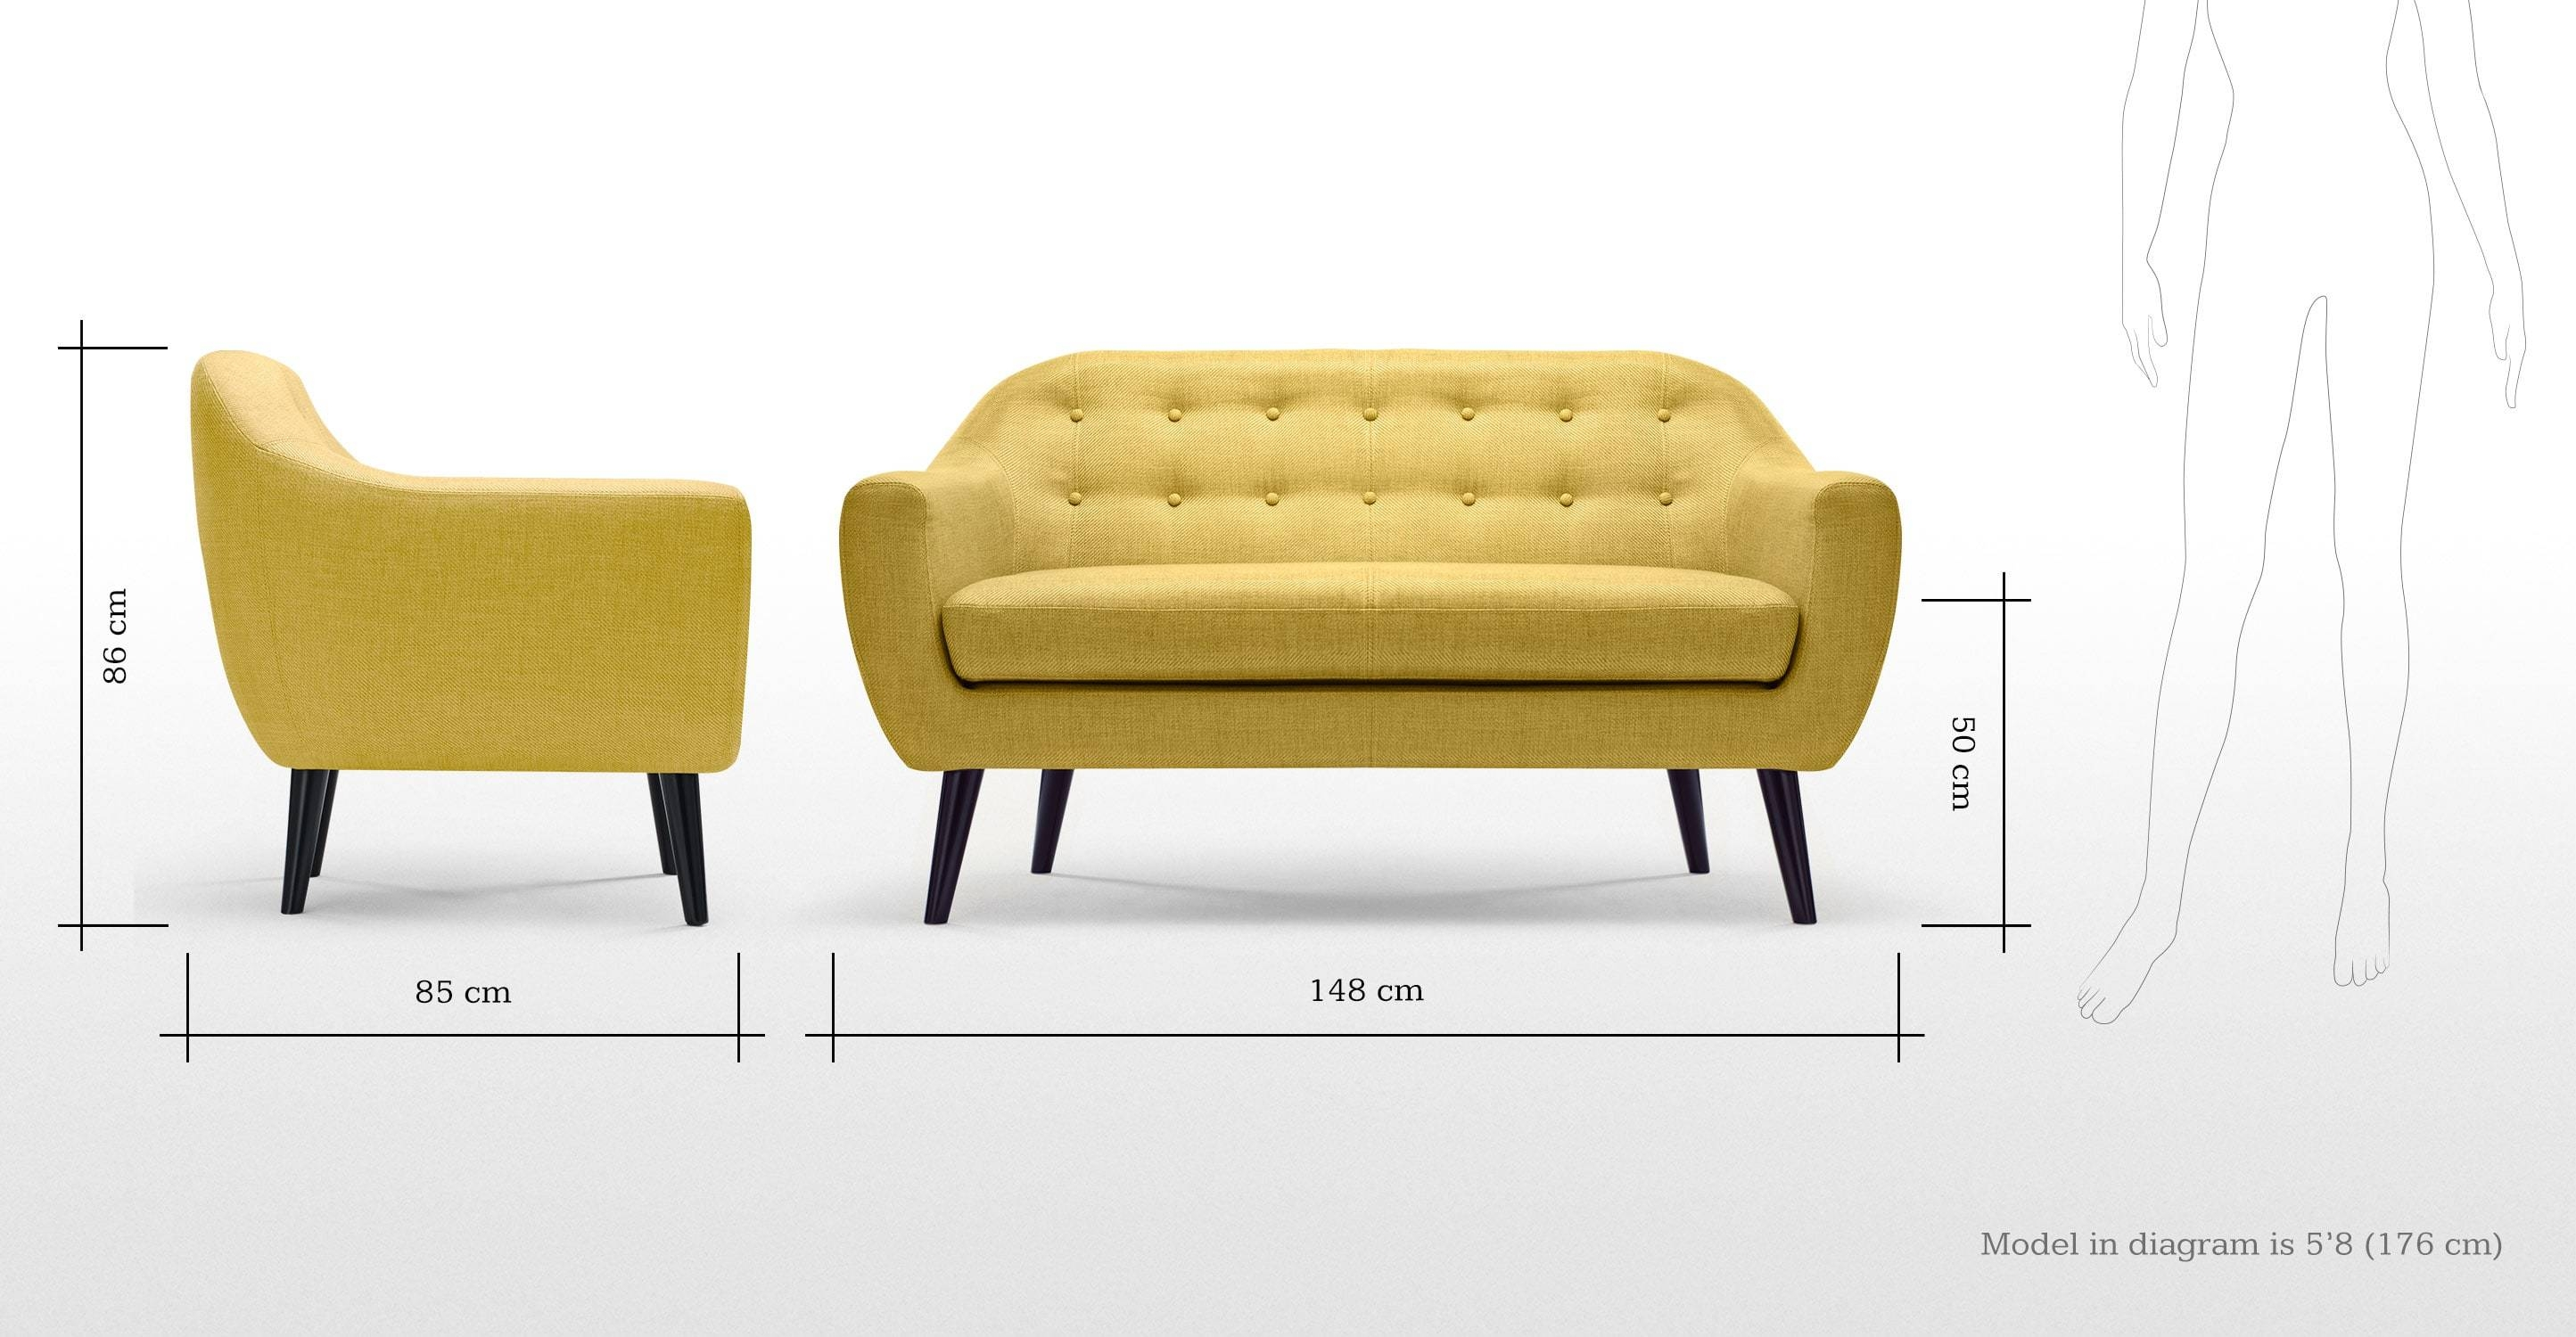 Ritchie 2 Seater Sofa, Ochre Yellow | Made Regarding Small 2 Seater Sofas (View 9 of 30)